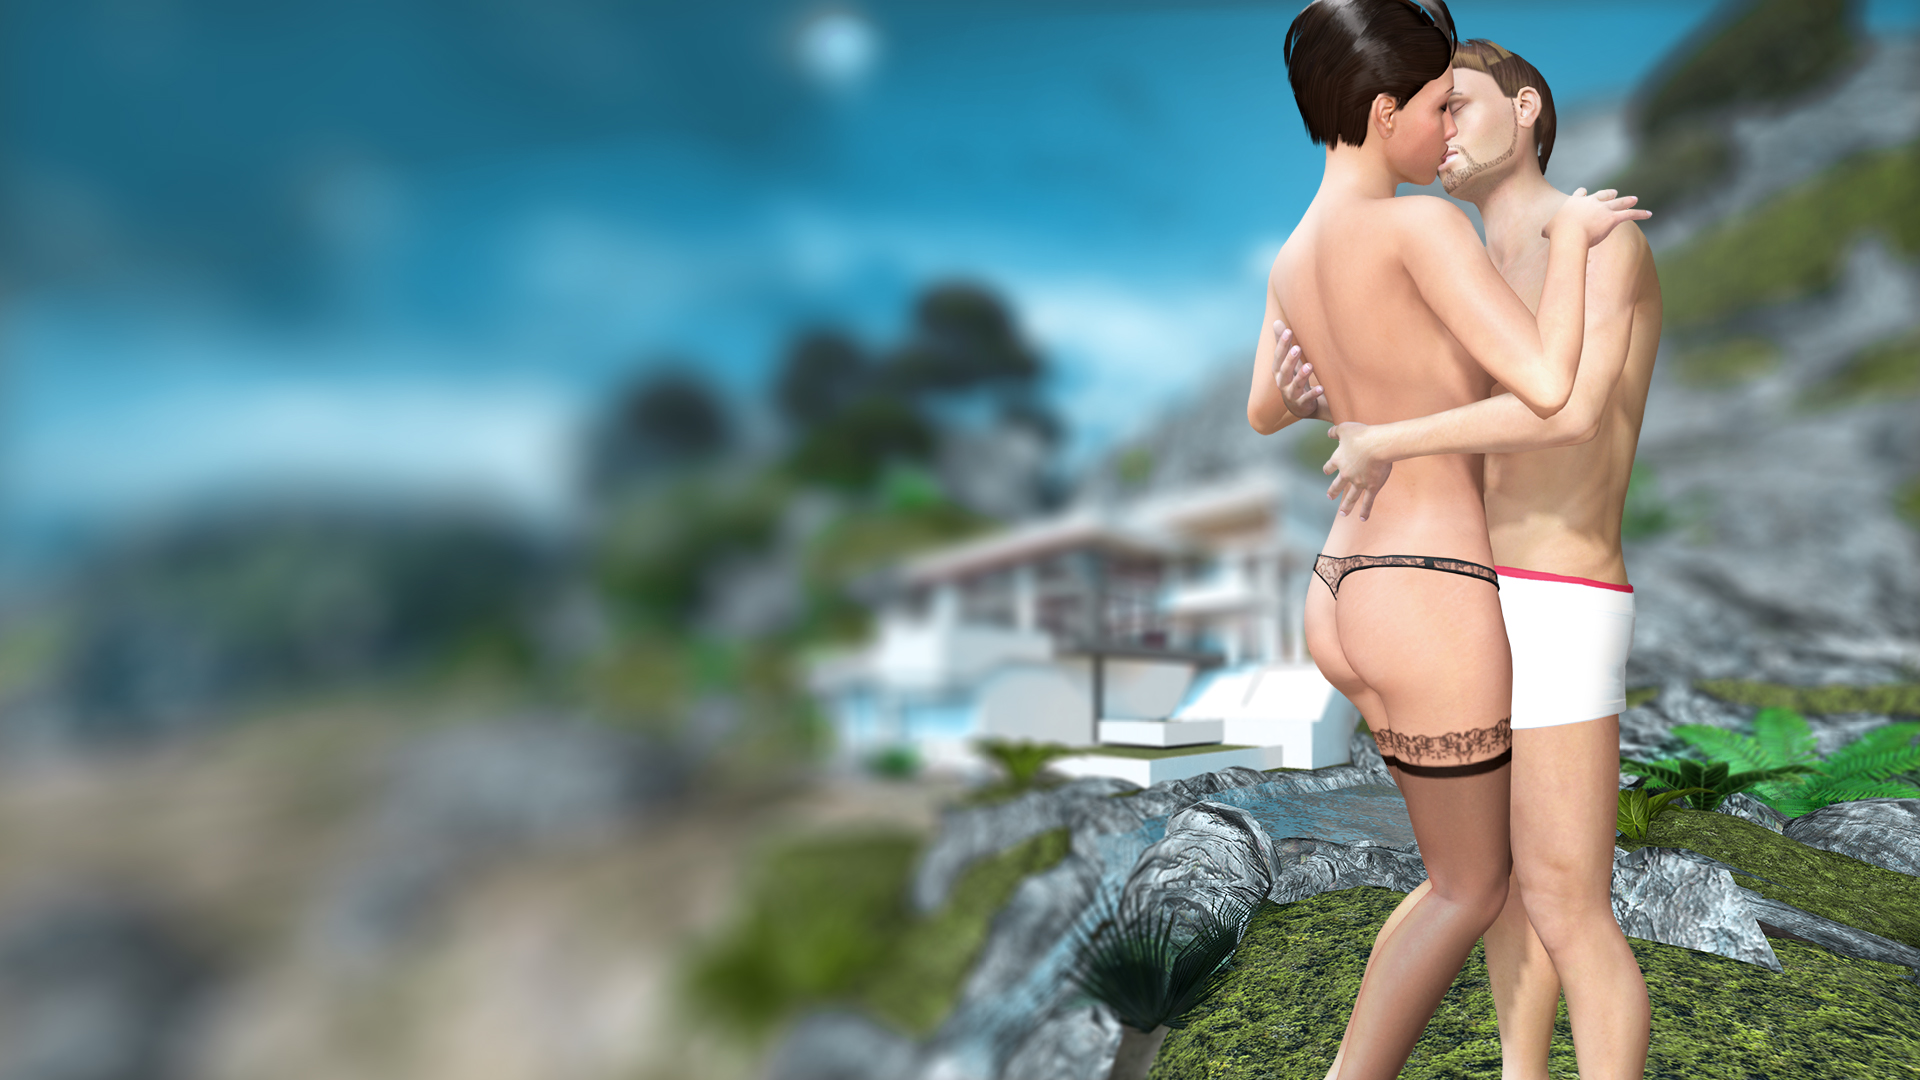 3d multiplayer sex games hentai scene